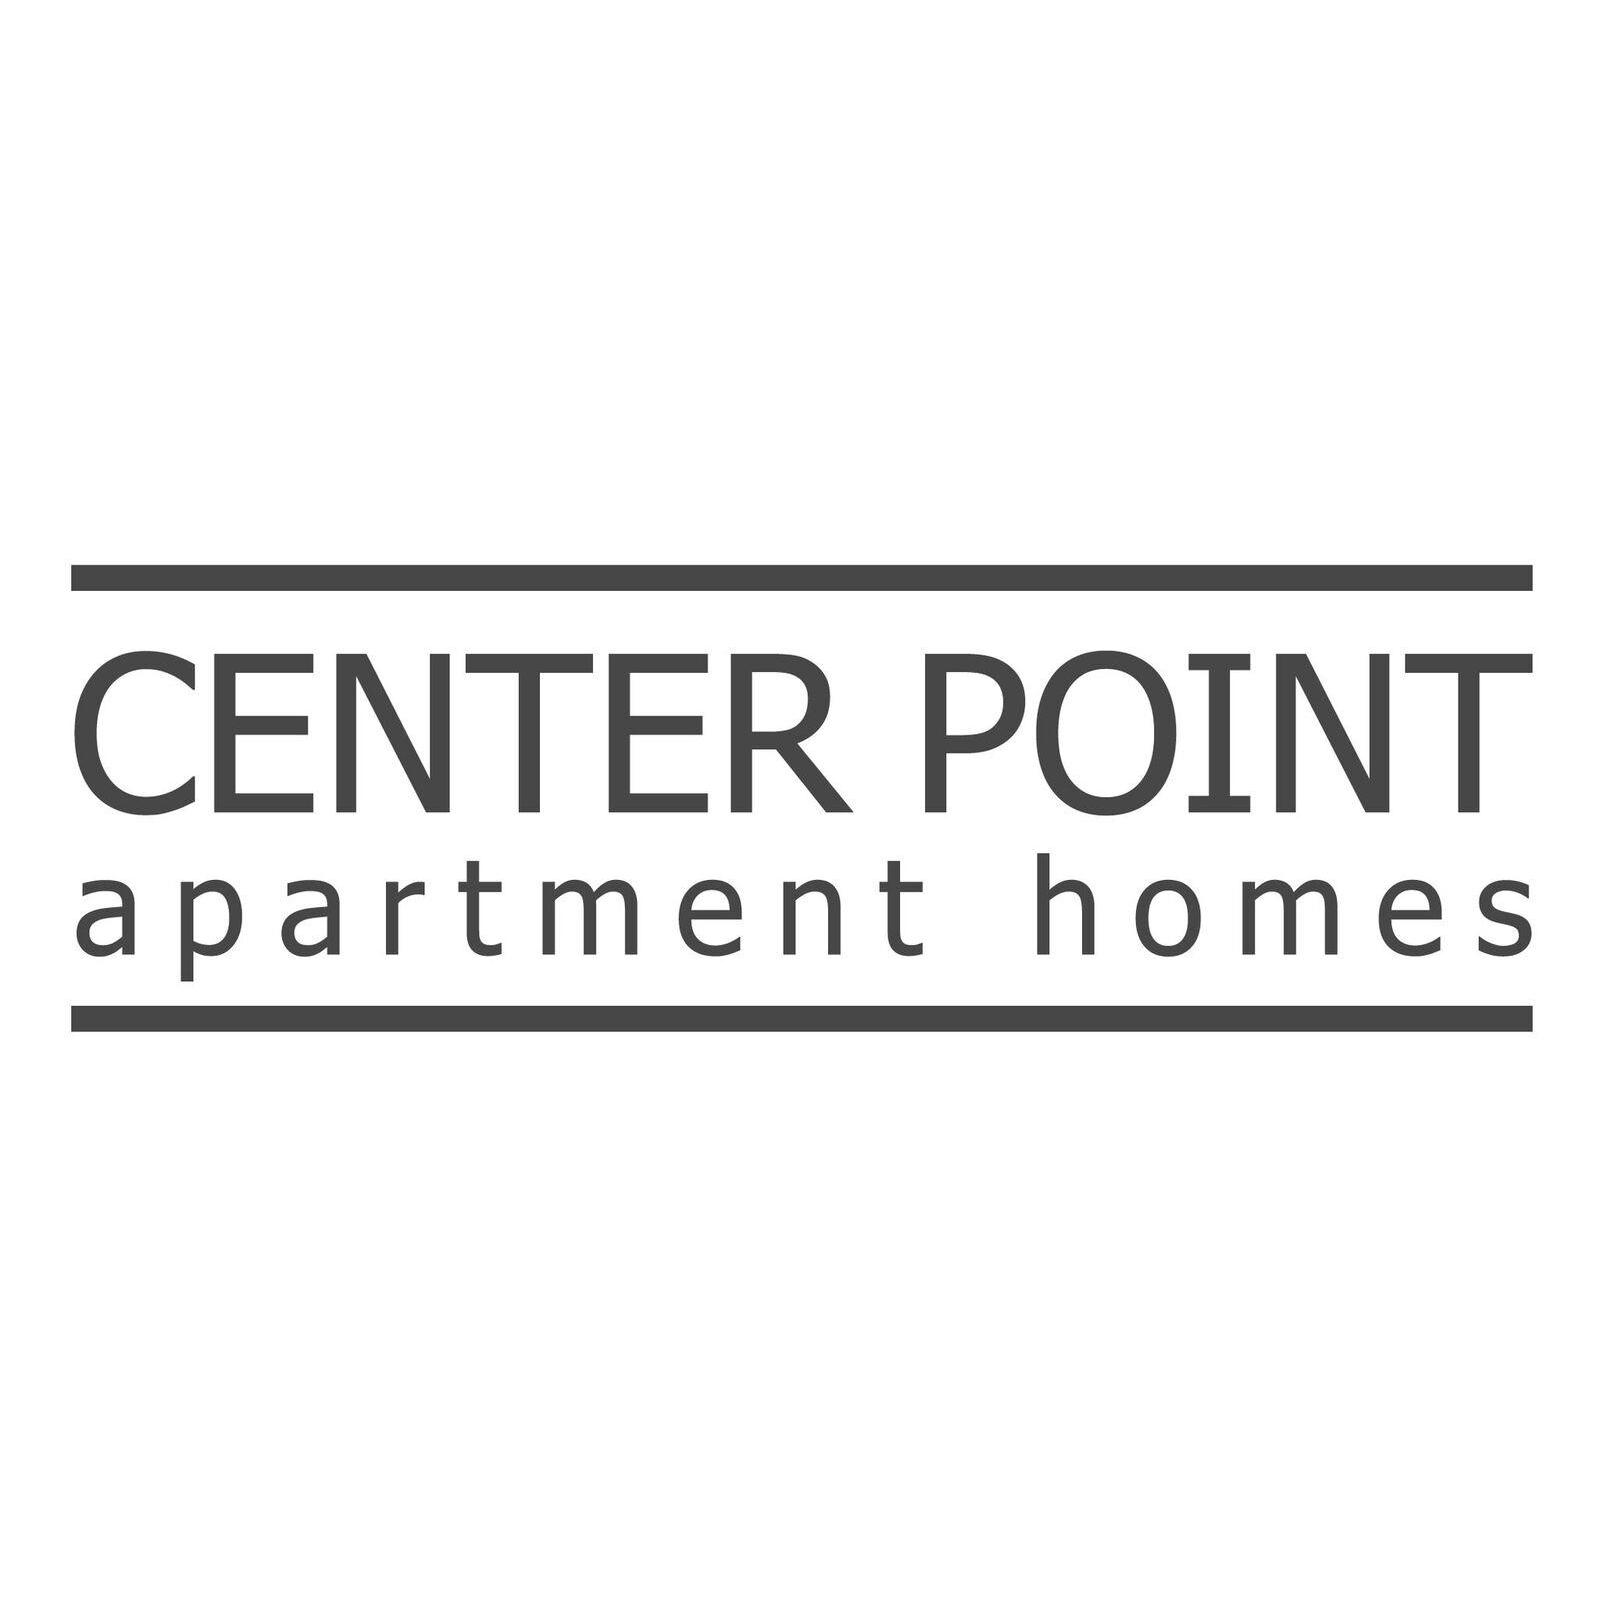 Center Point Apartment Homes image 8